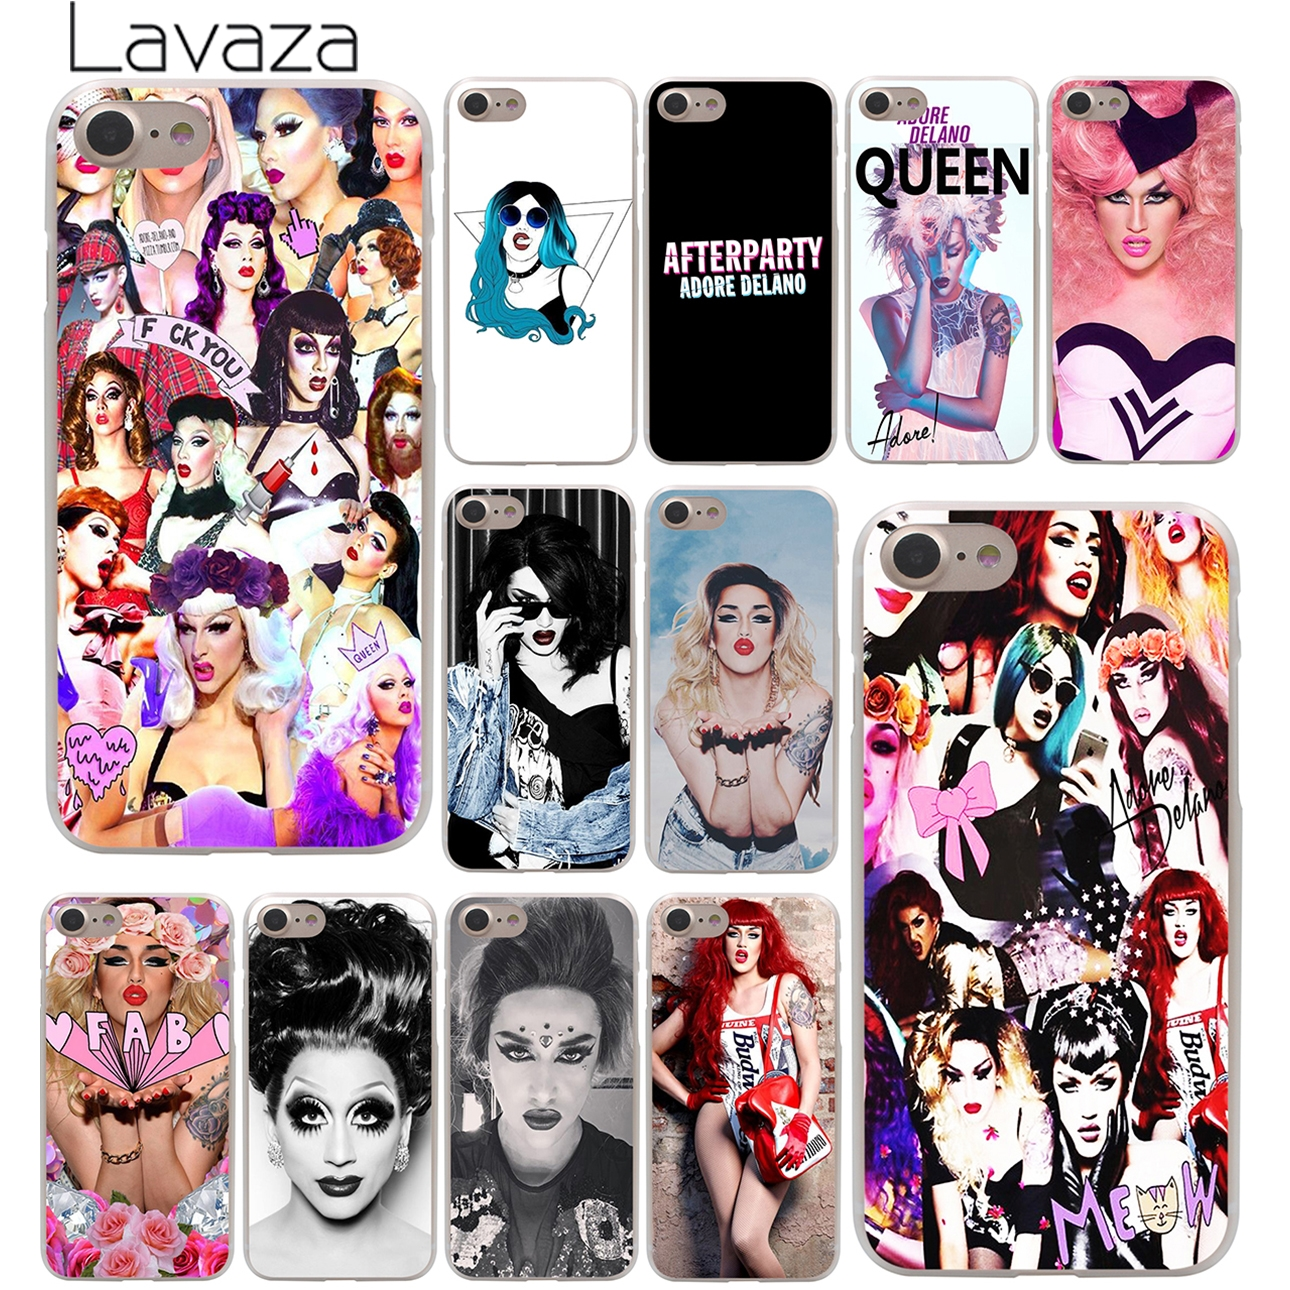 Lavaza Adore Delano Hard Phone Cover Case For Apple Iphone 10 X 8 Fleksibel Volume 6sp 7 6 6s Plus 5 5s Se 5c 4 4s Coque Shell